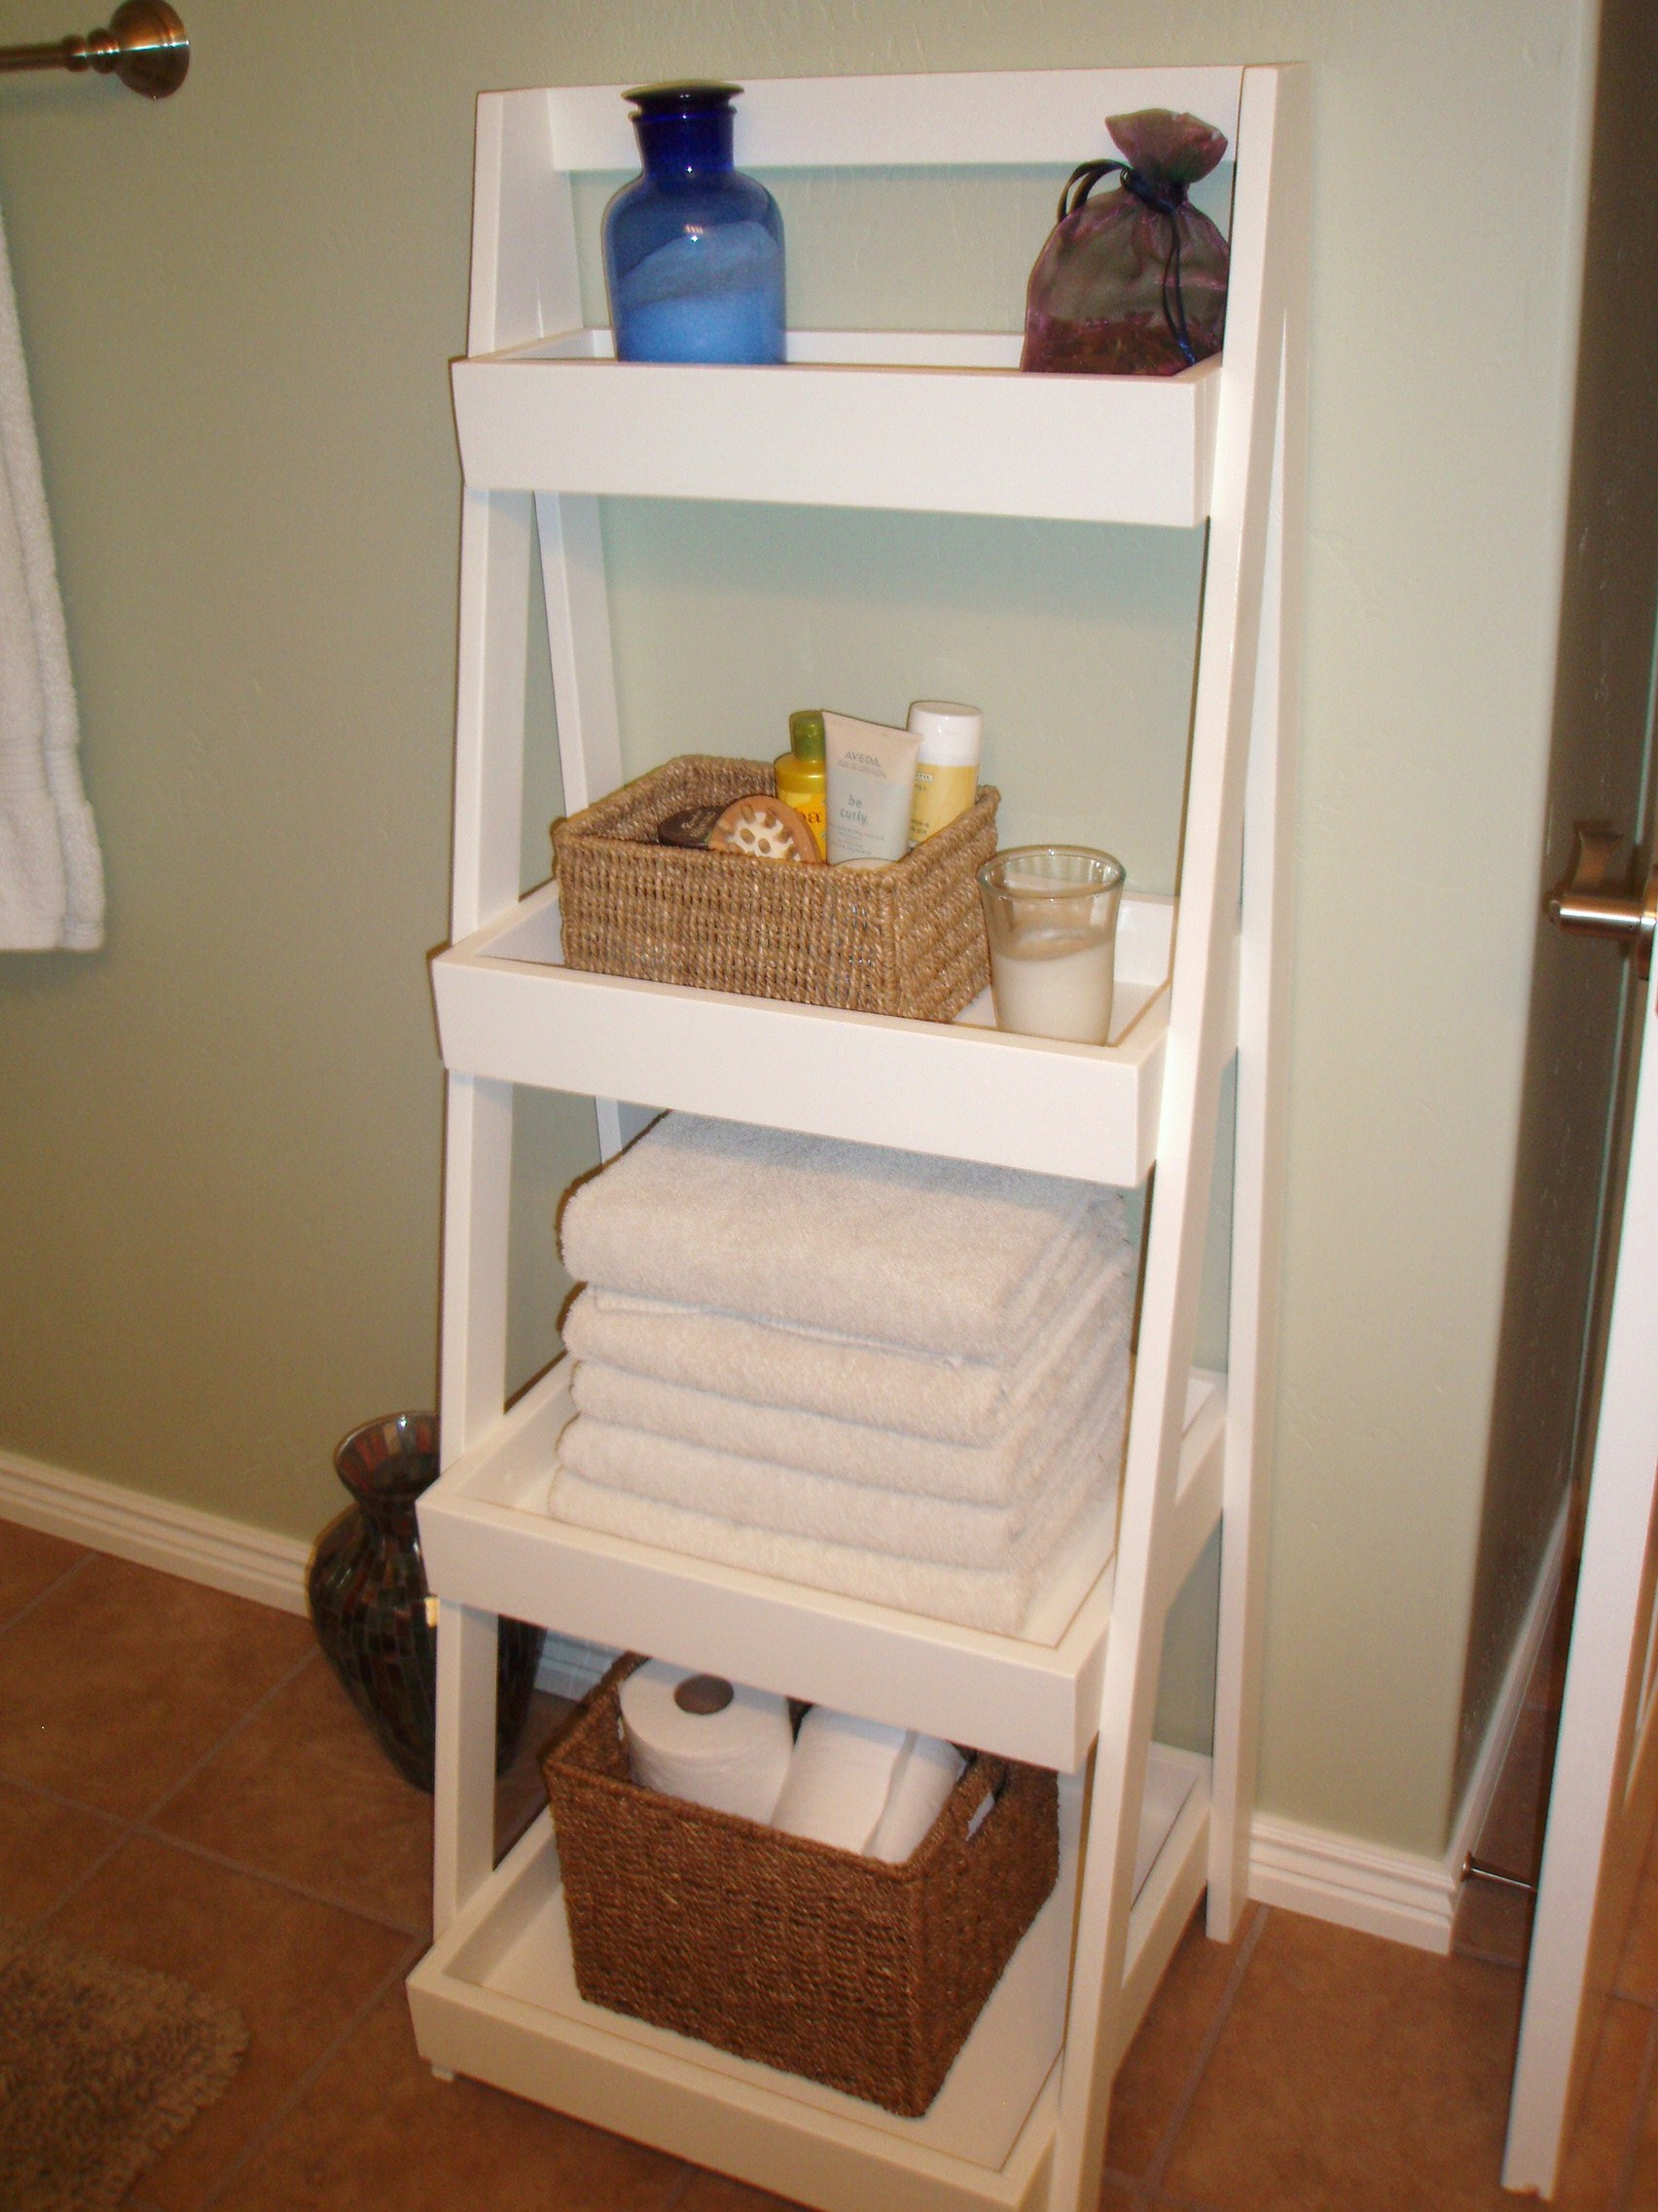 Ana White  Our new Ladder Shelf  DIY Projects